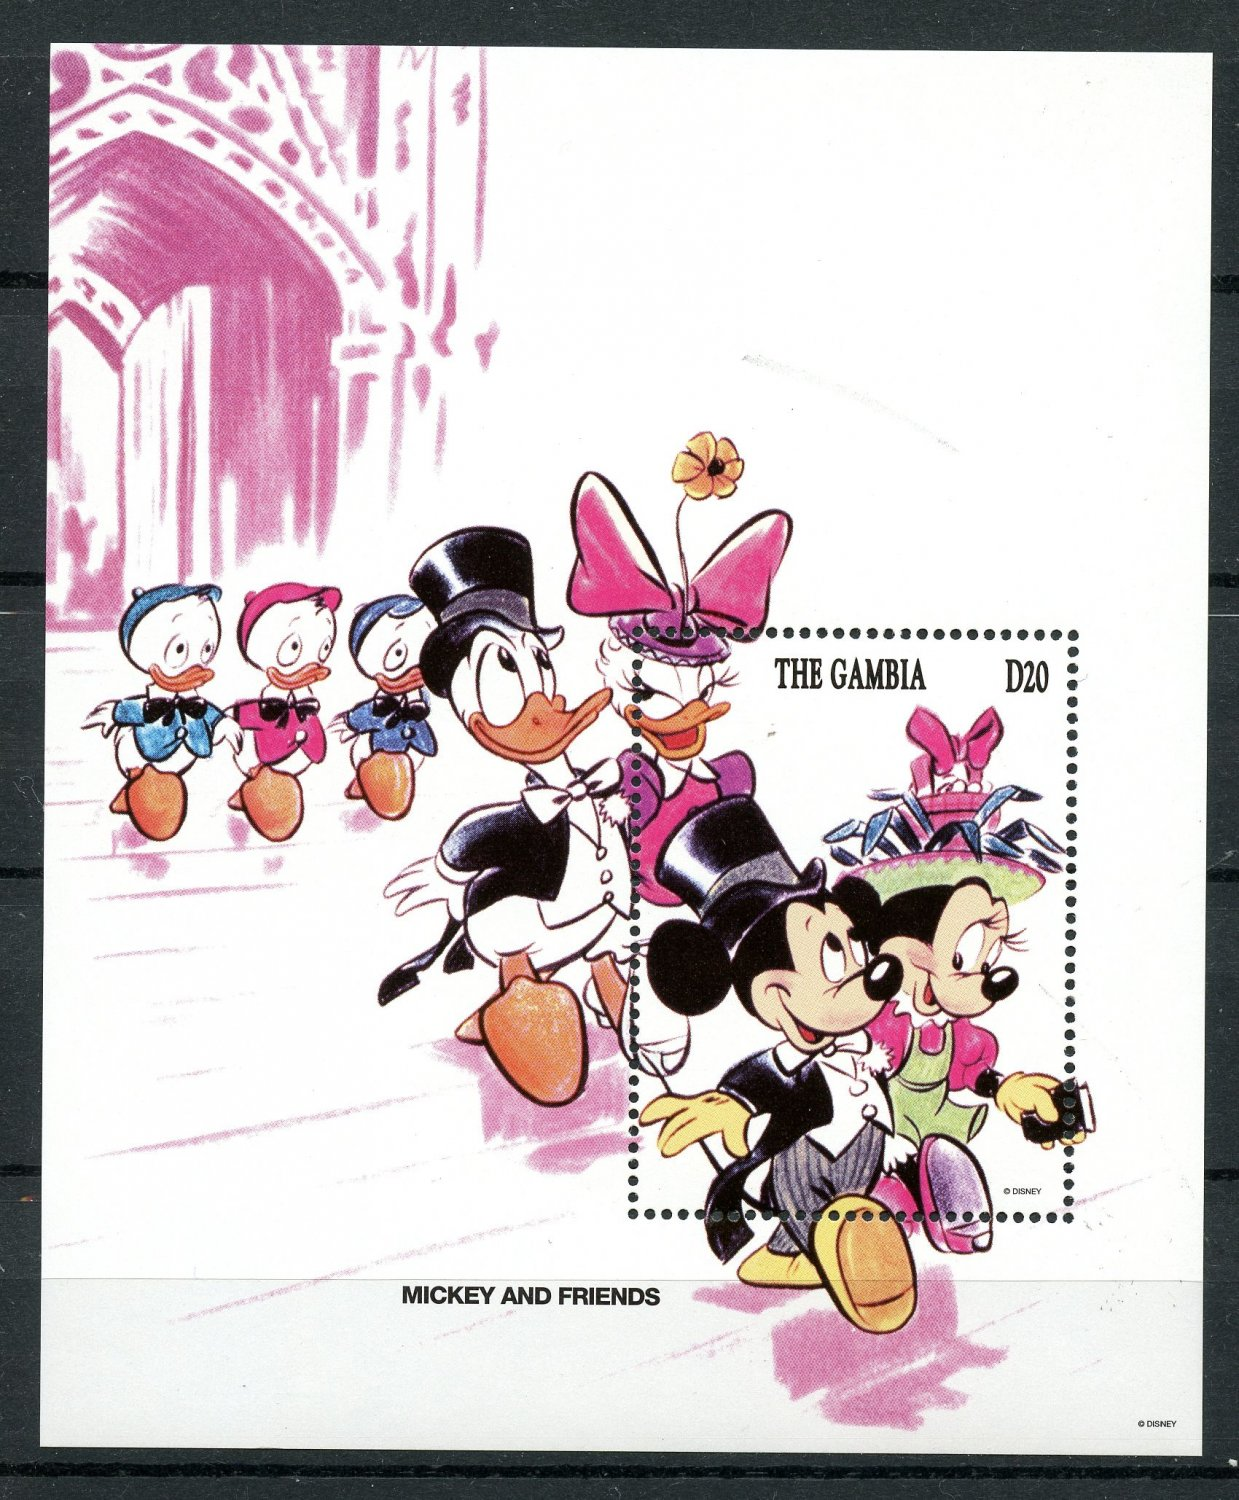 Easter Mickey Minnie Donald Daisy Souvenir Sheet 1994 Gambia #1533